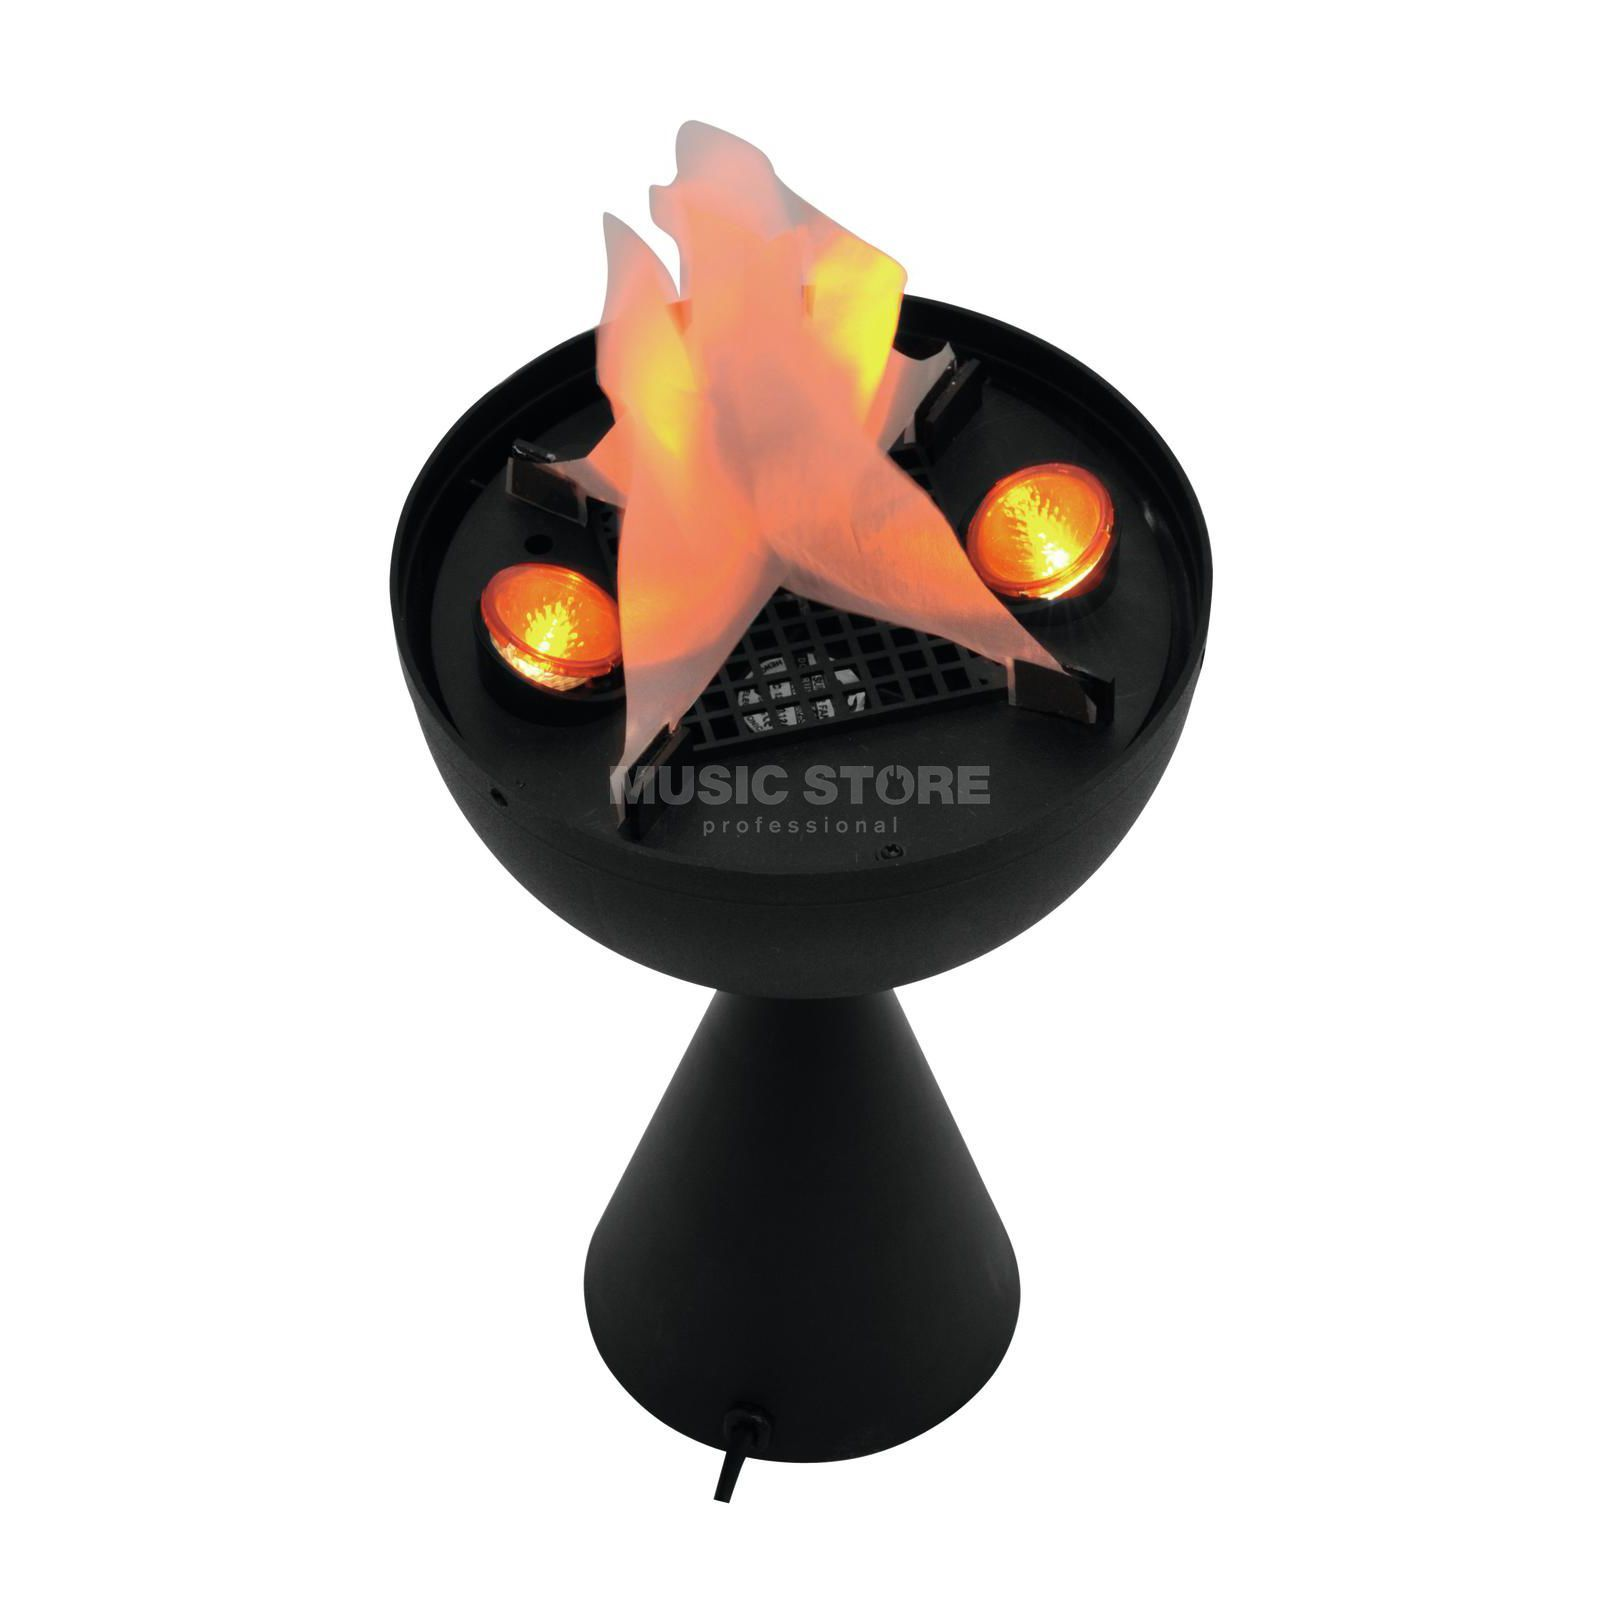 Eurolite FL-201 Flame-Light Tischversion Produktbild